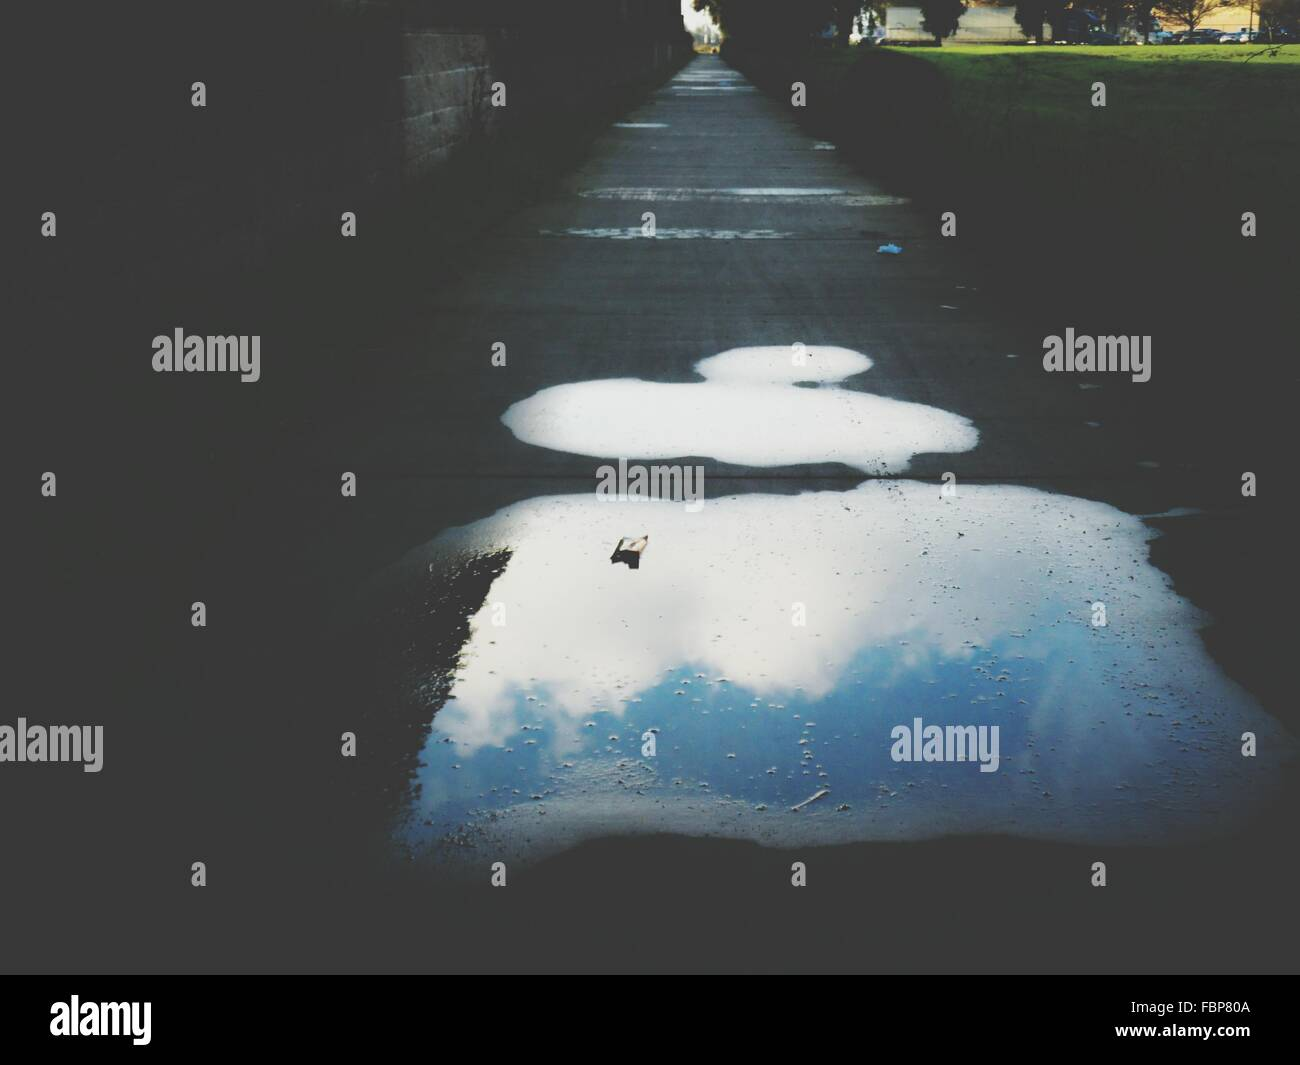 Reflection Of Clouds In Water At Narrow Pathway - Stock Image